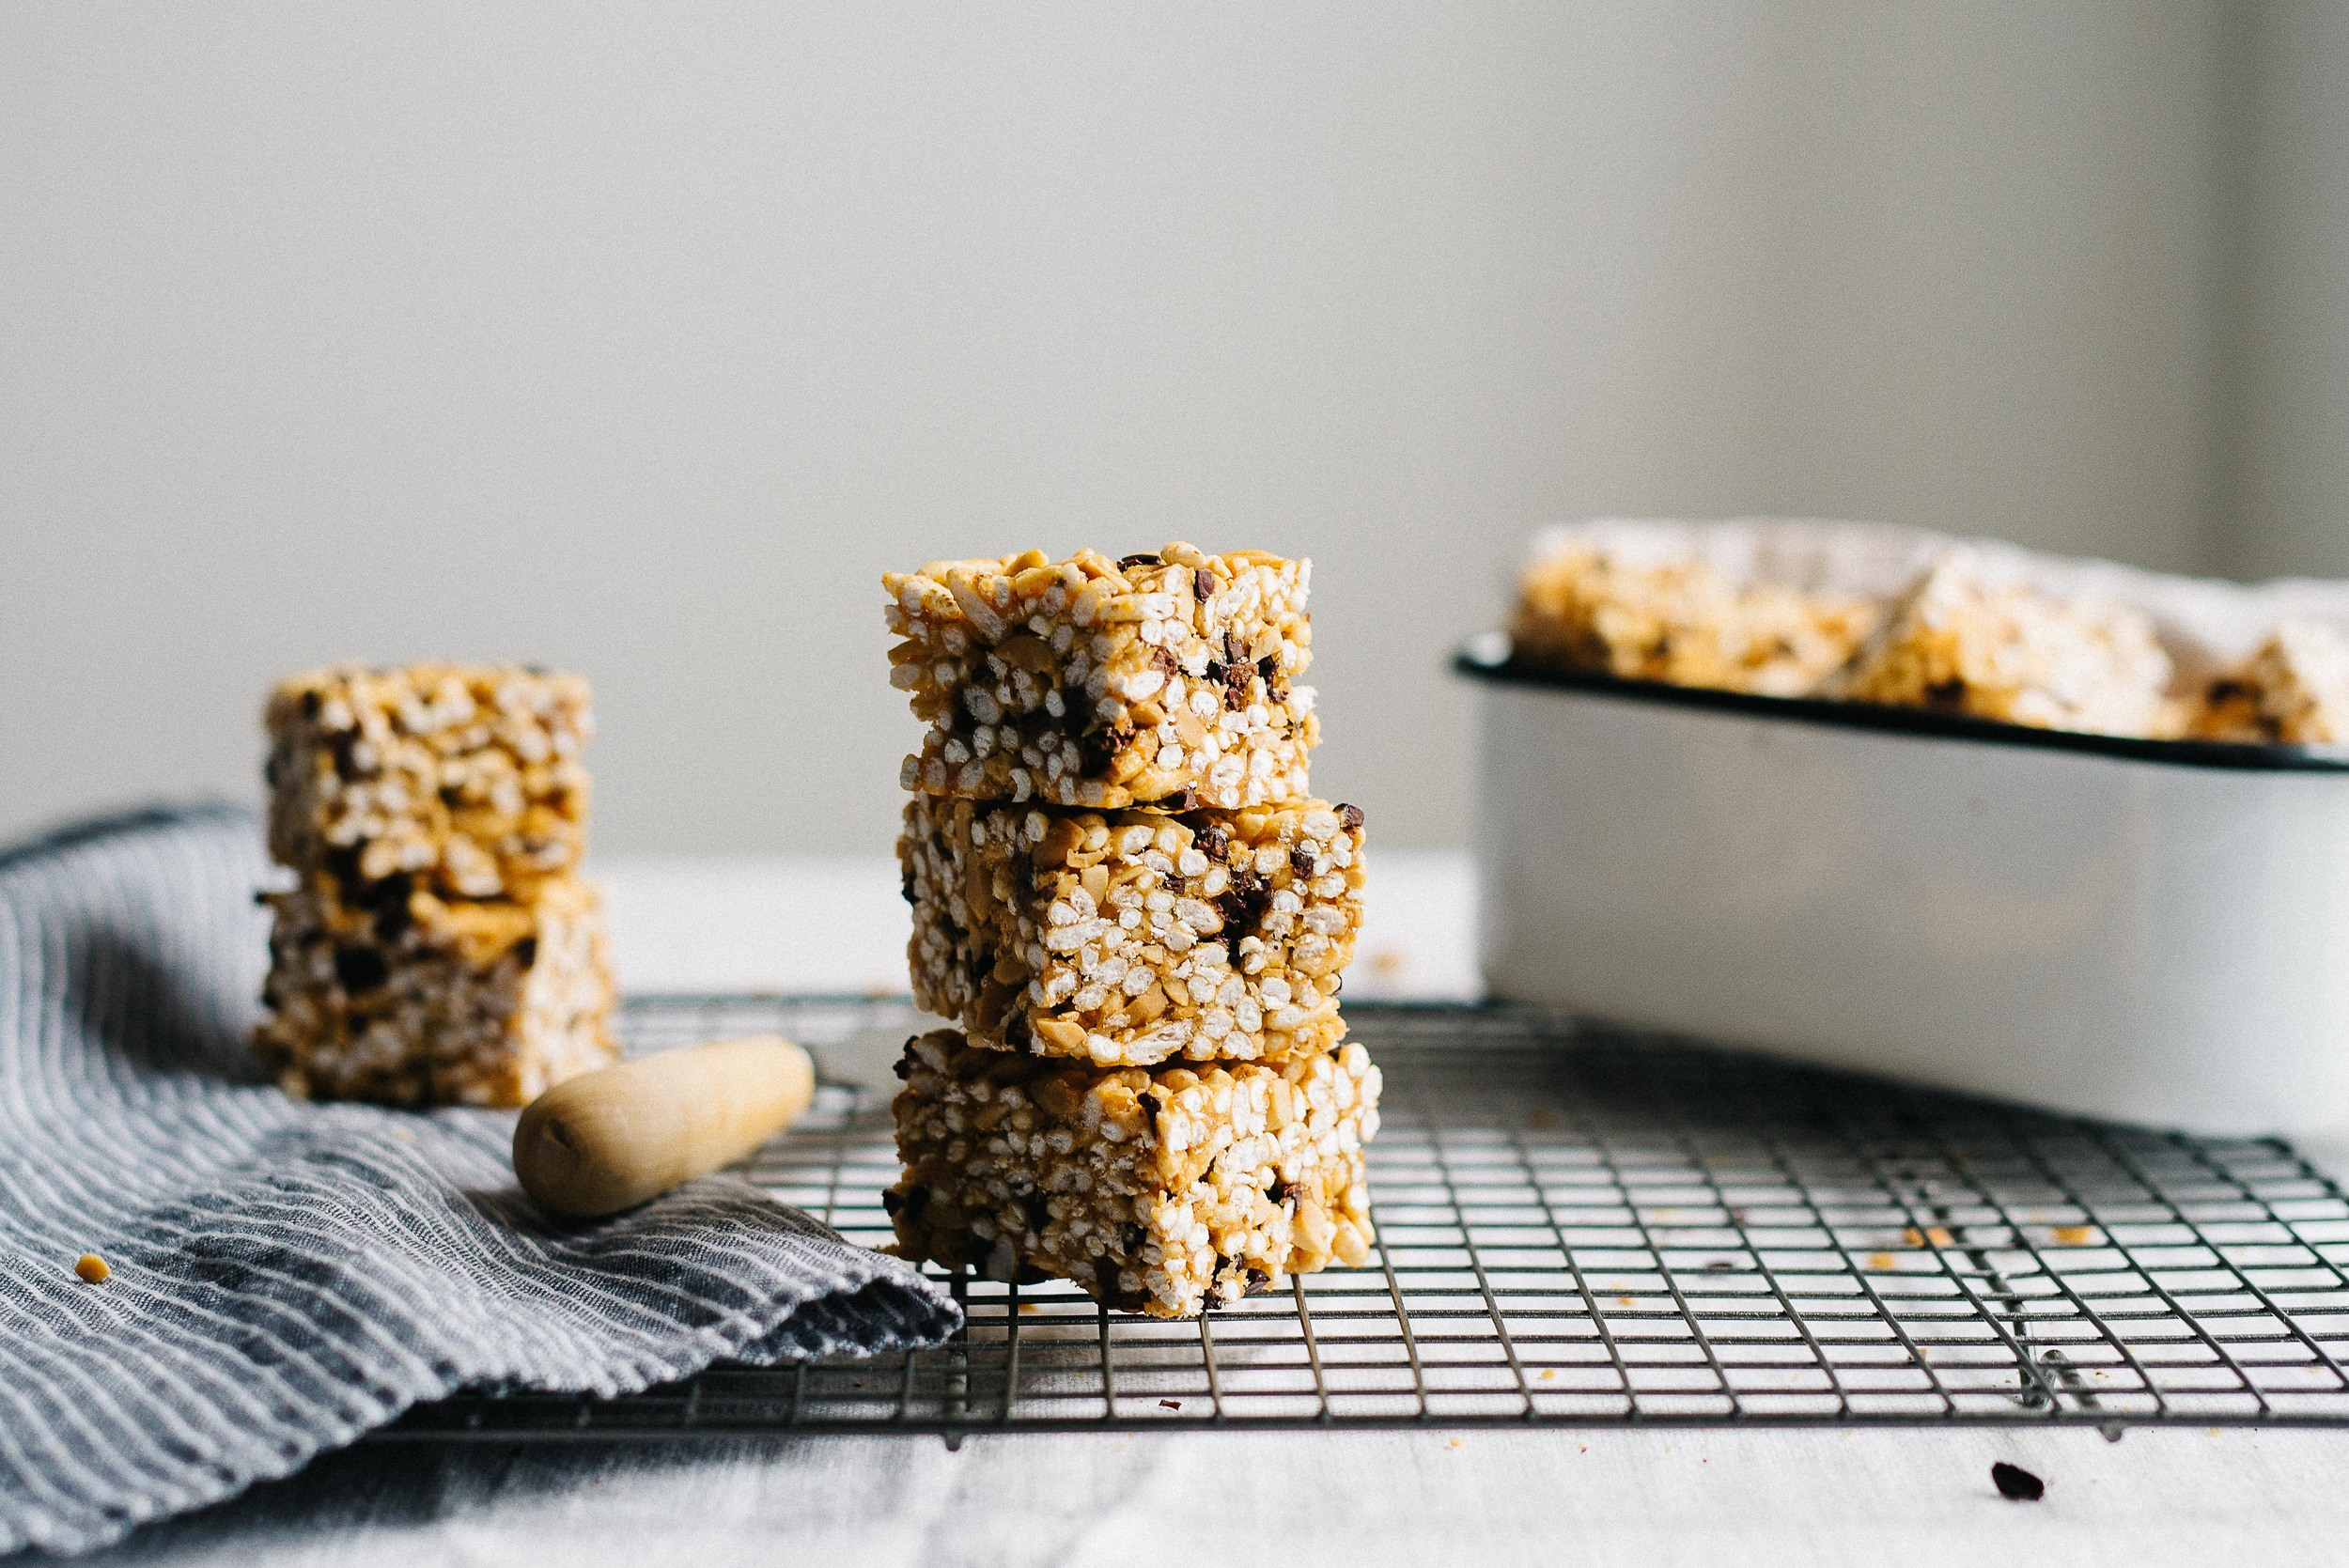 (no bake) peanut butter + cacao nib cereal bars | dolly and oatmeal #glutenfree #vegan